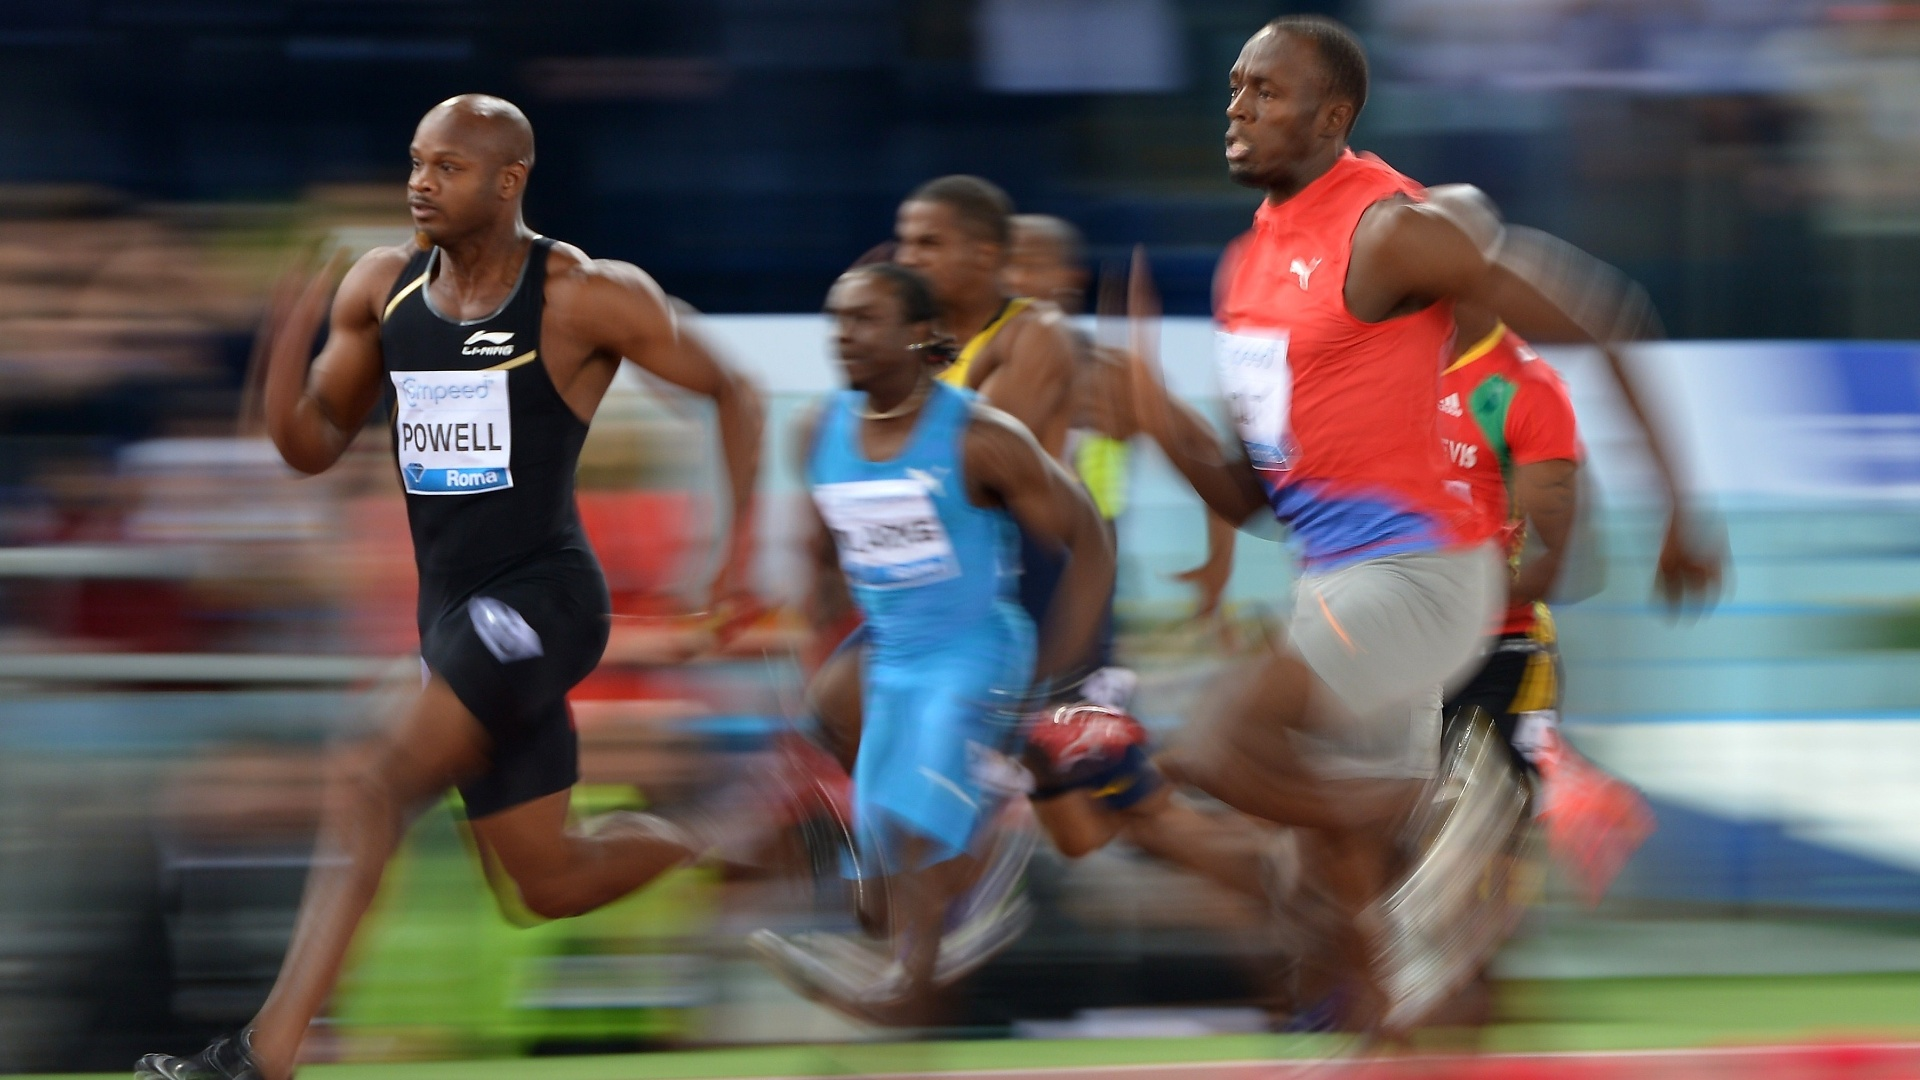 Foto mostra em detalhes o duelo particular entre Asafa Powell (e) e Usain Bolt nos 100 m na Liga de Diamante, em Roma (31/05/2012)